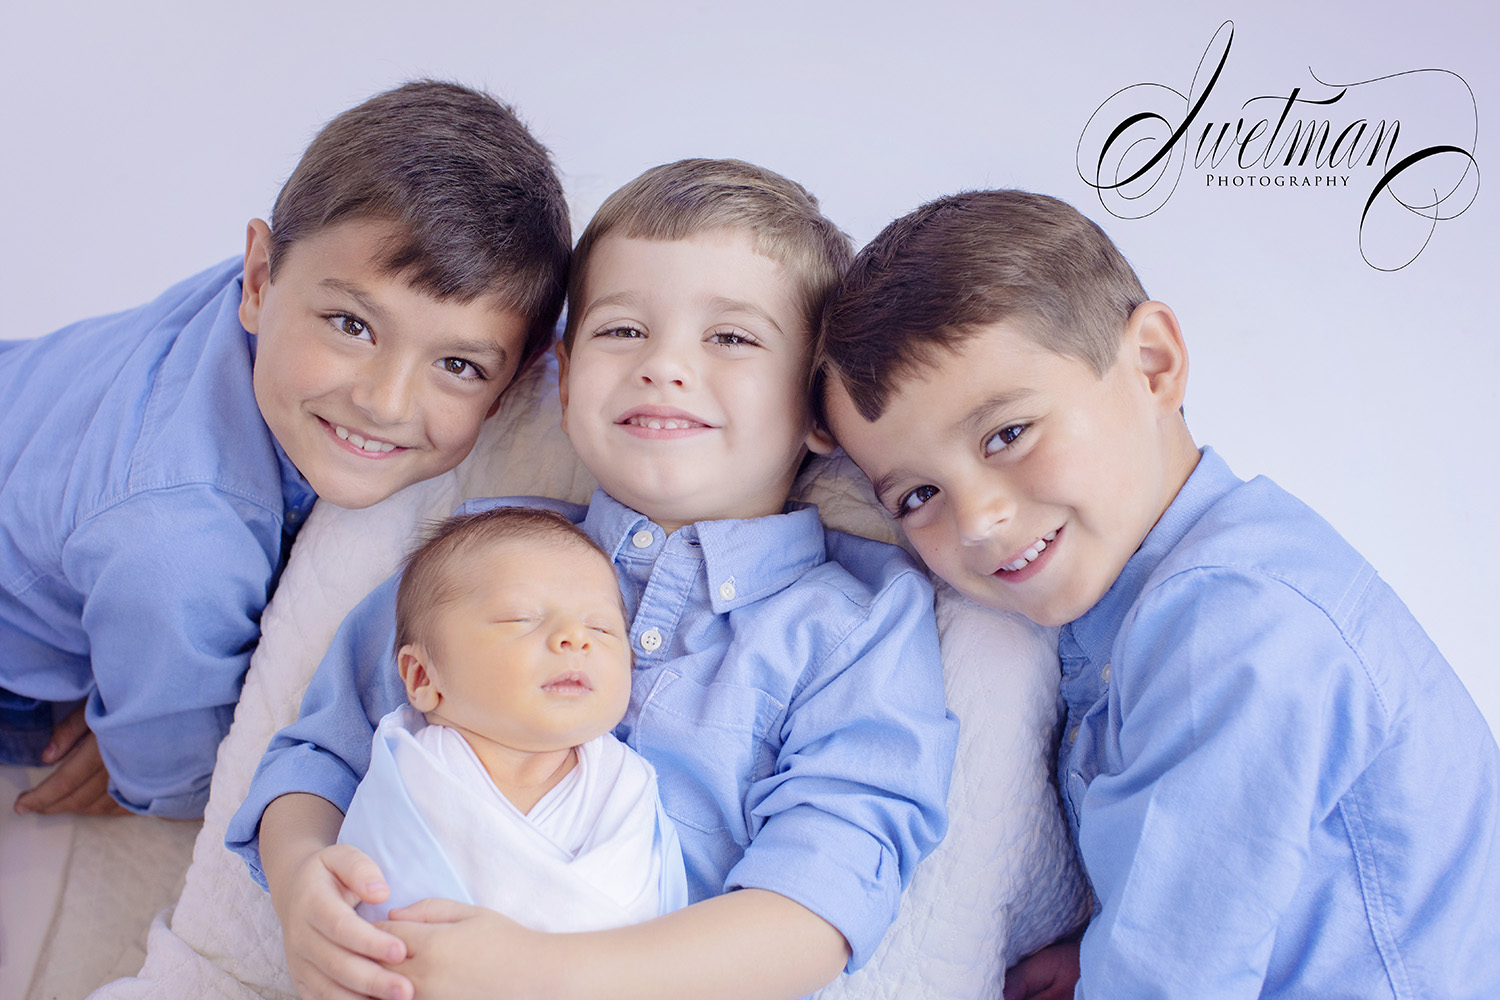 Brothers-Newborn-Photography-Swetman-Photography.jpg